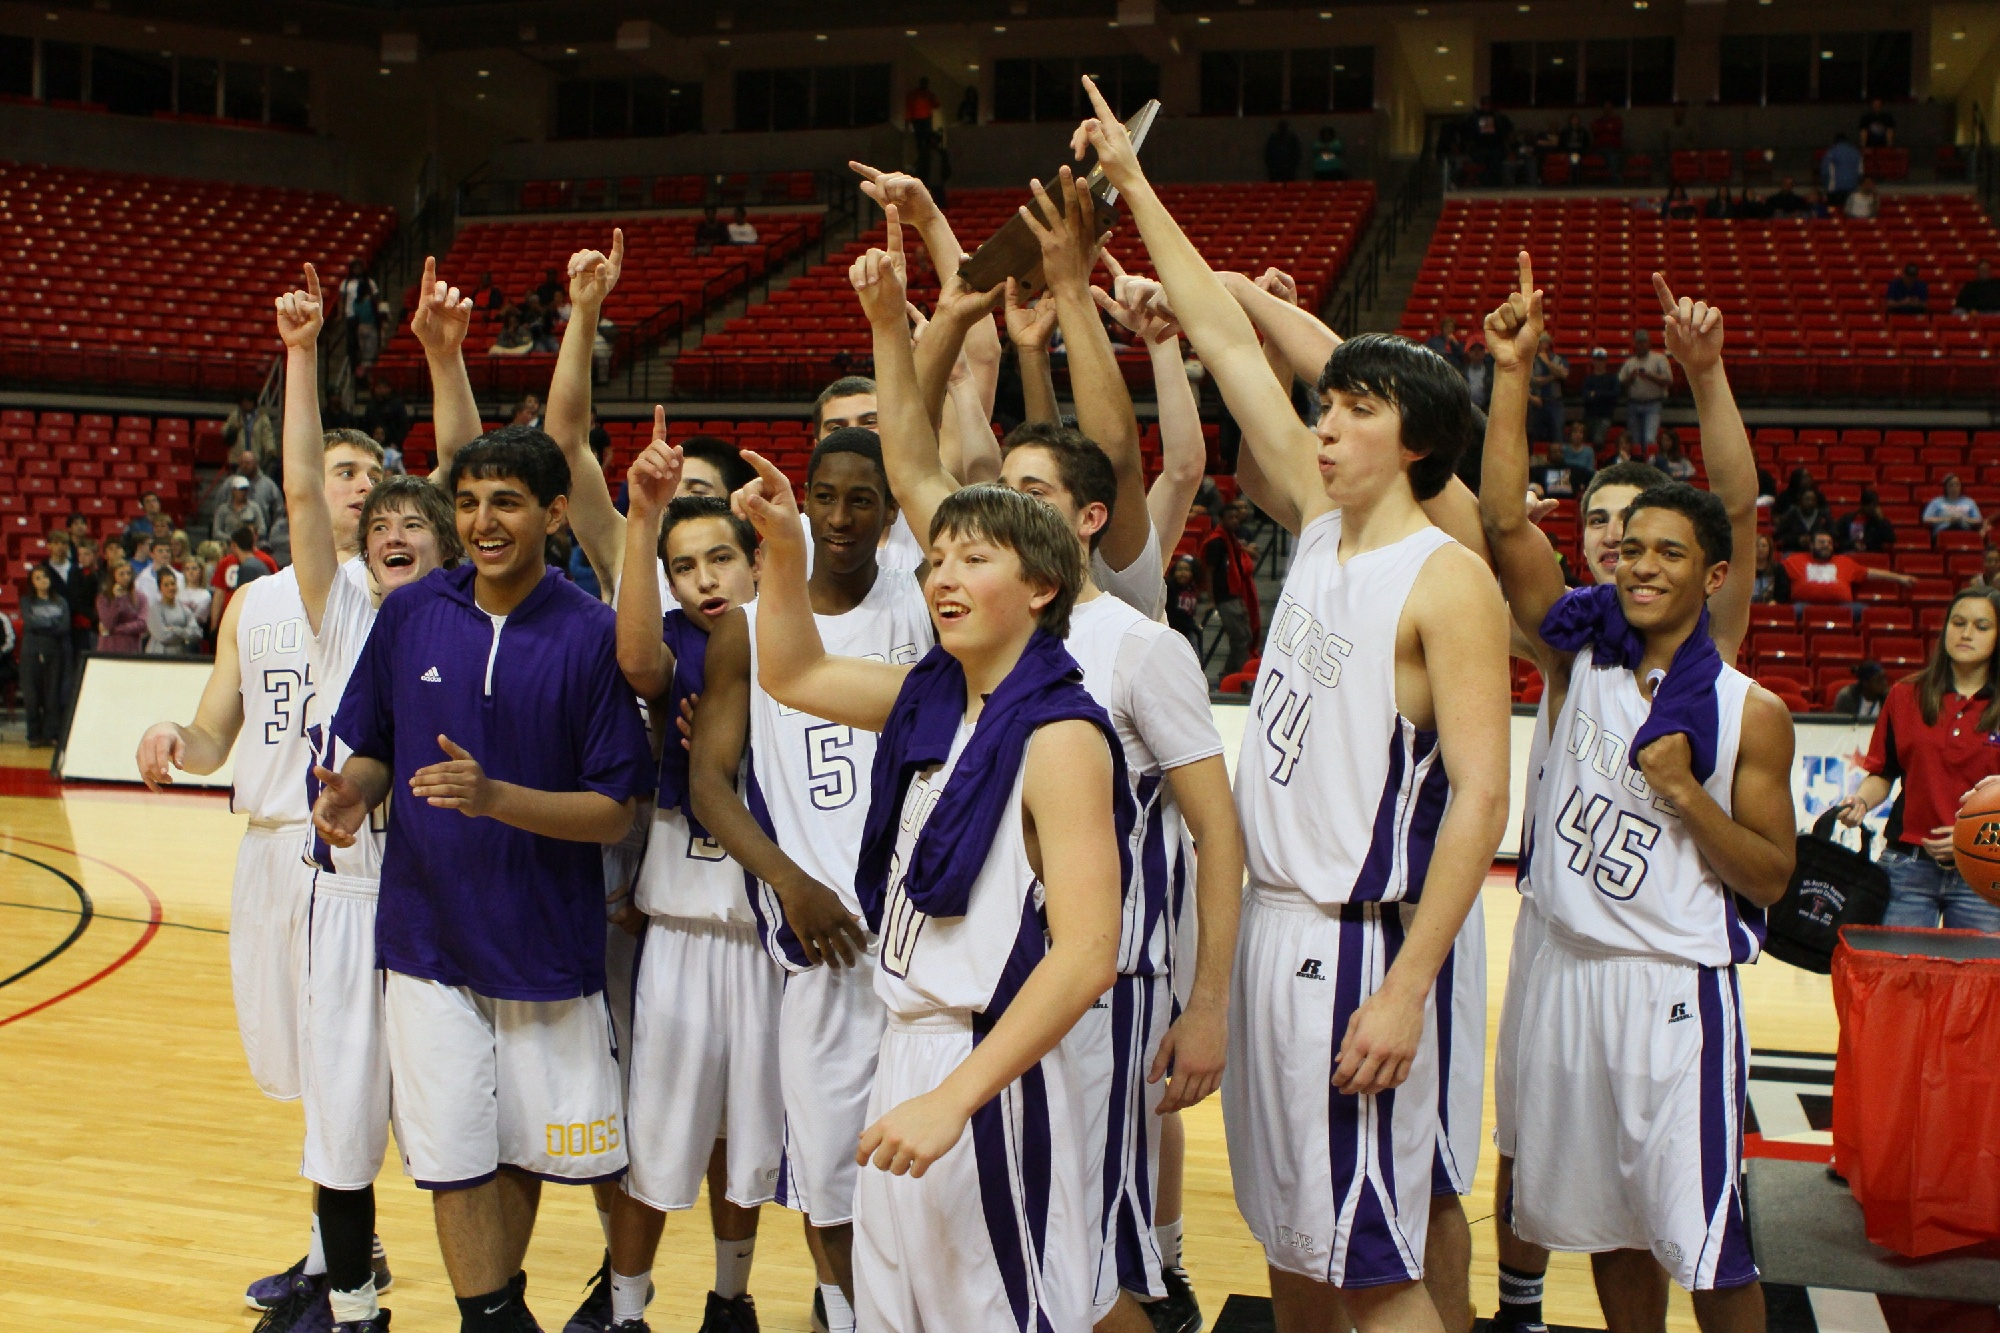 Wylie players celebrated after defeating Wichita Falls Hirschi 57-55 in the regional finals to advance to the state tournament in Austin.The No. 5-ranked Bulldogs (34-4) are scheduled to play No. 2-ranked Dallas Madison (30-4) at 1:30 p.m. Thursday in the semifinals of the Class 3A Final Four.Photo by Tim Nelson/WylieSports.com